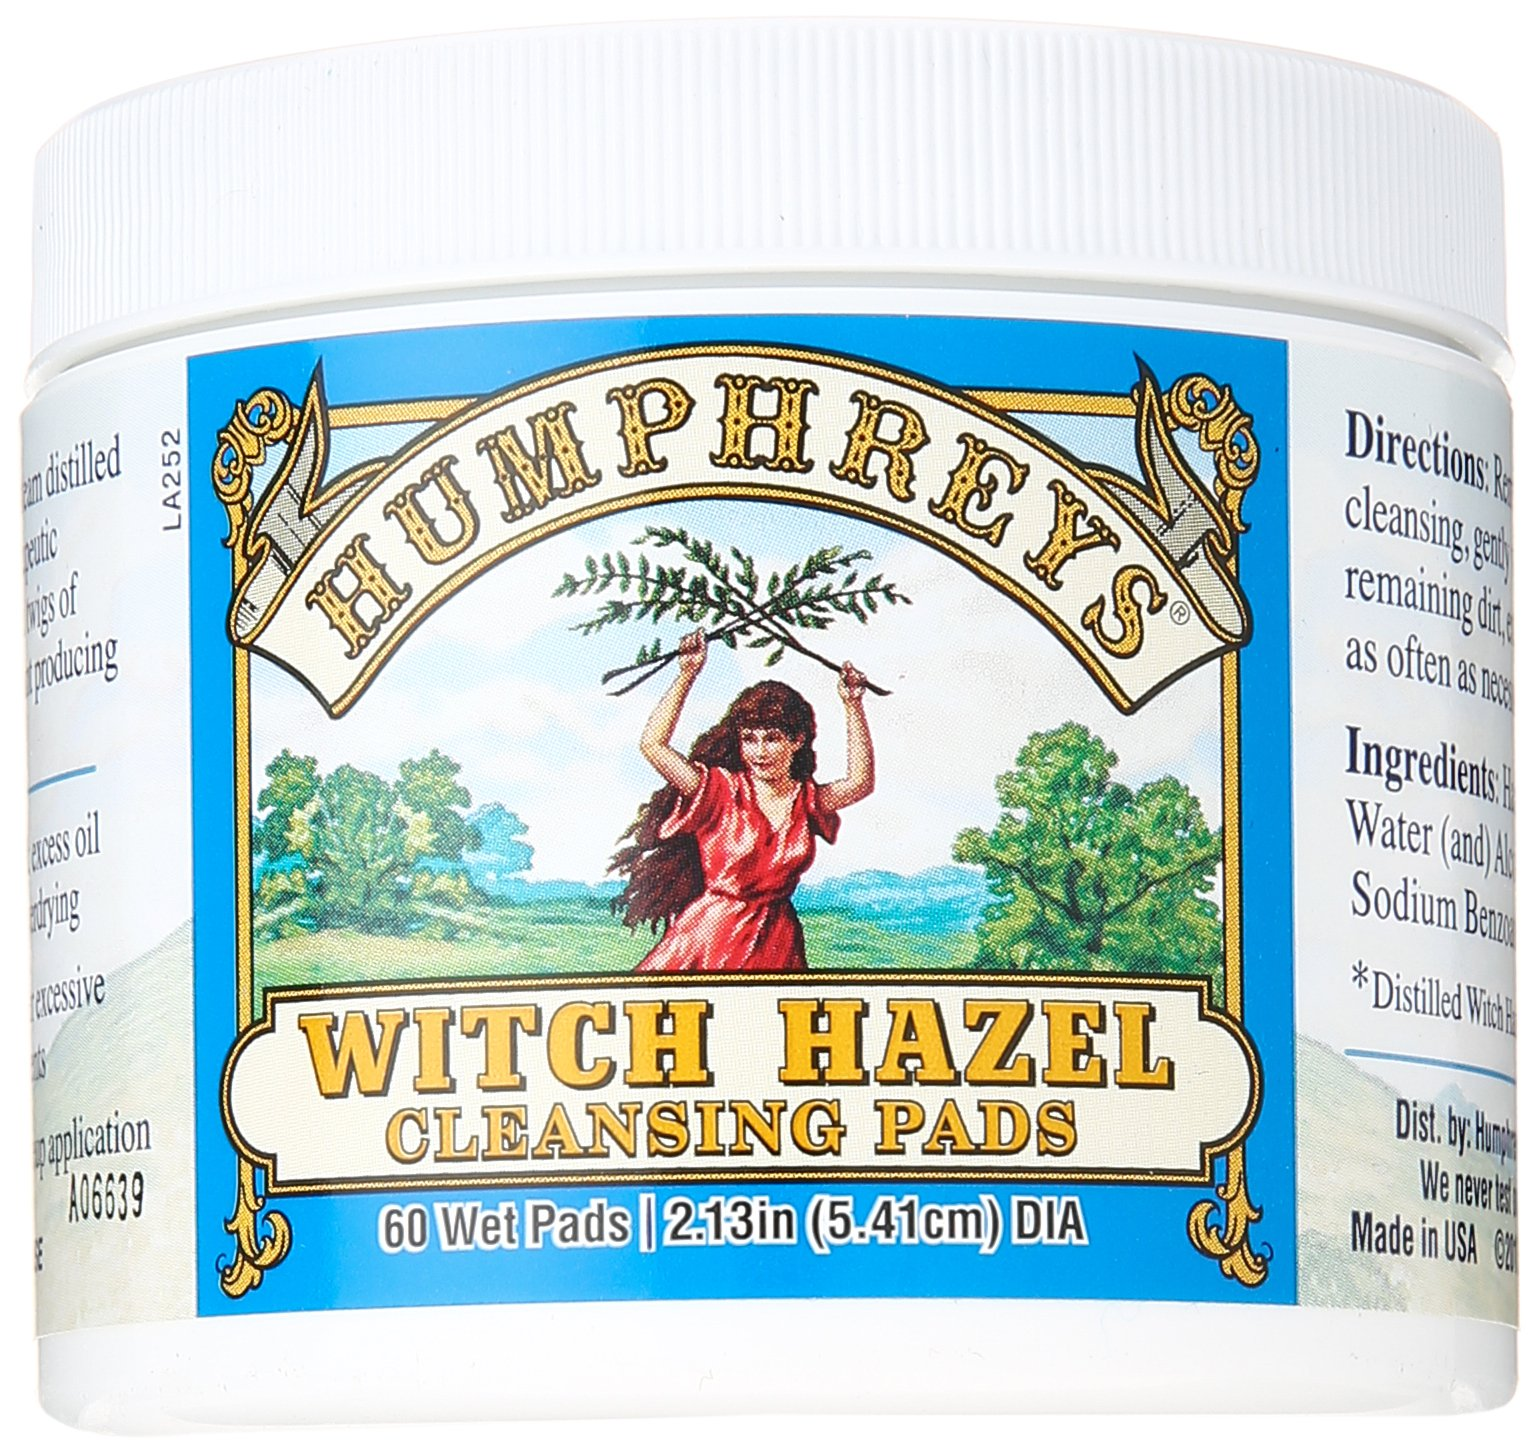 Humphrey's Witch Hazel Cleansing Pads